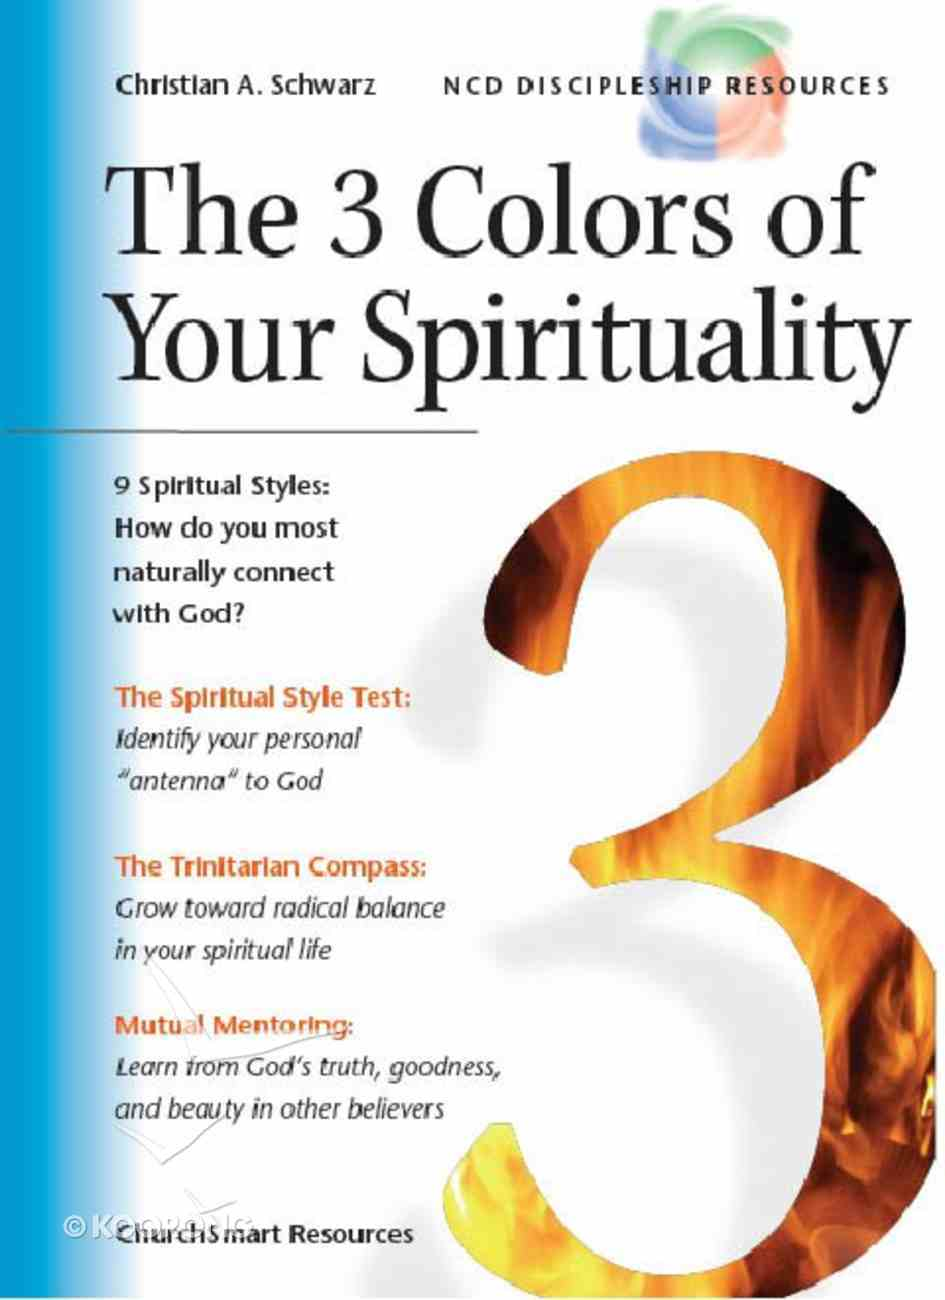 The 3 Colors of Your Spirituality (Ncd Discipleship Resources Series) Paperback